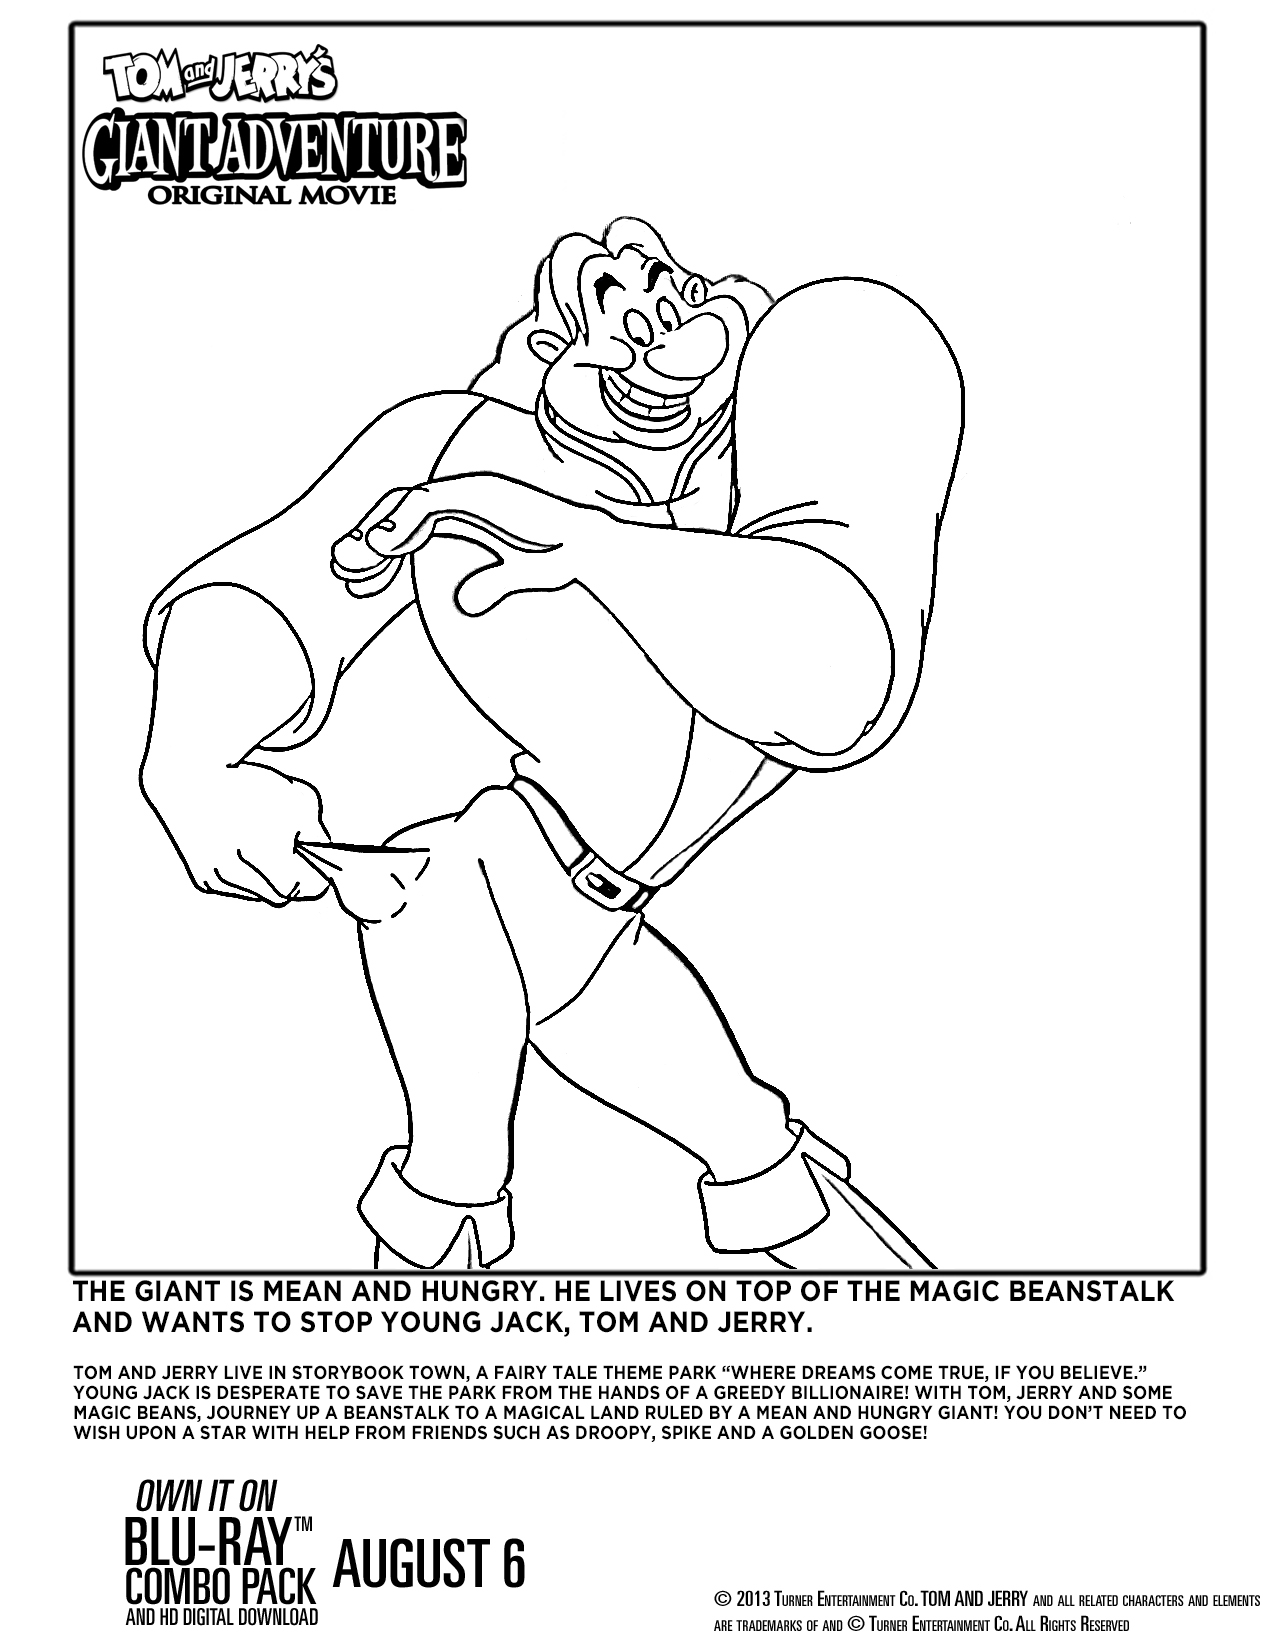 Tom and Jerry coloring pages on Coloring-Book.info | 1650x1275